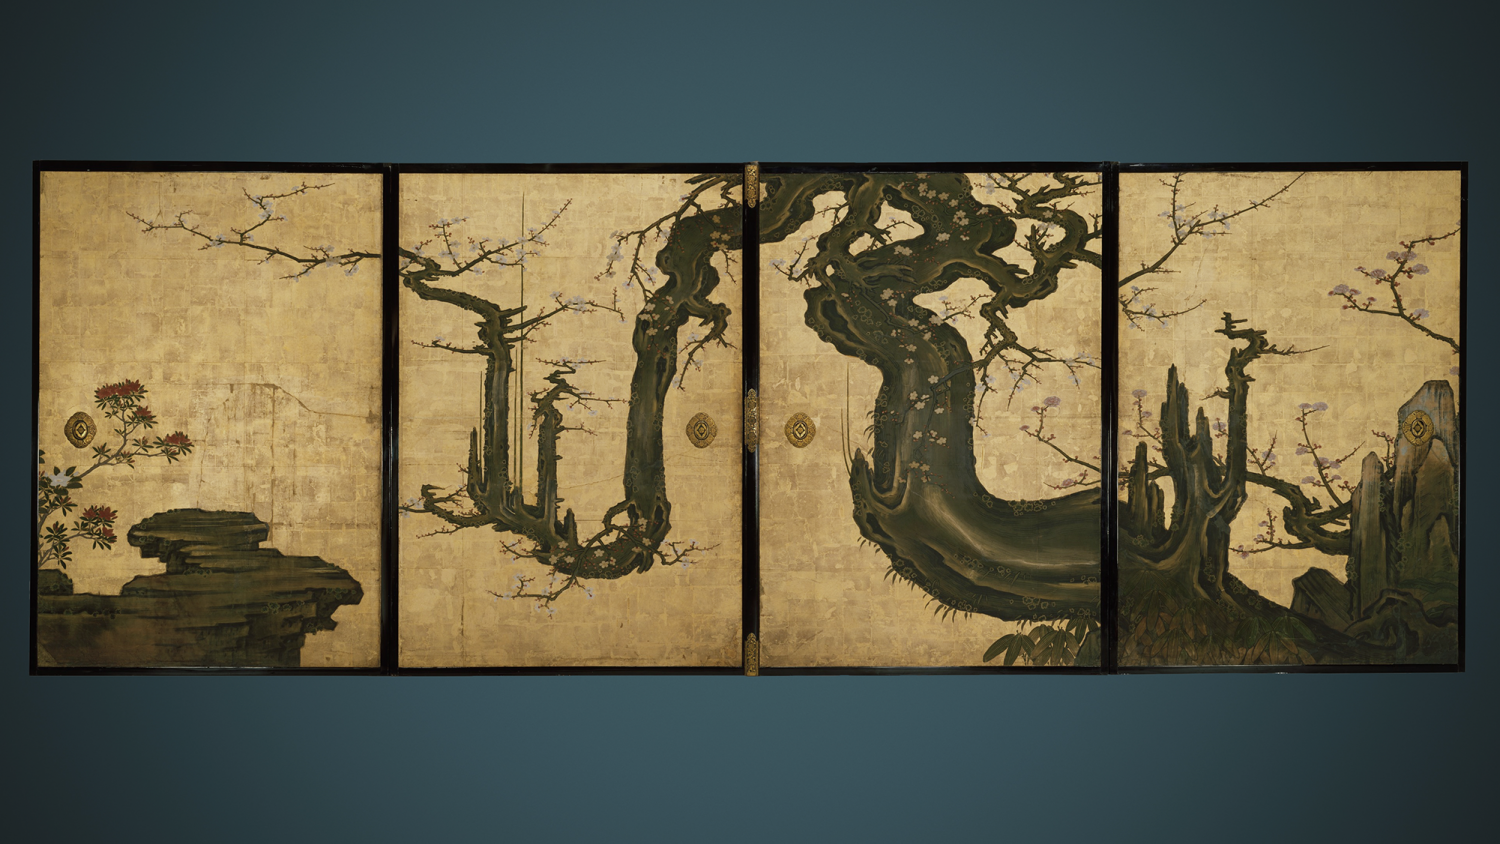 The massive black trunk of an ancient plum tree with bending, twisting branches spans nearly sixteen feet across four sliding panels. The old tree sprouts blossoms. It originally formed one wall of a room in the Tenshōin, a subtemple of Myōshinji.